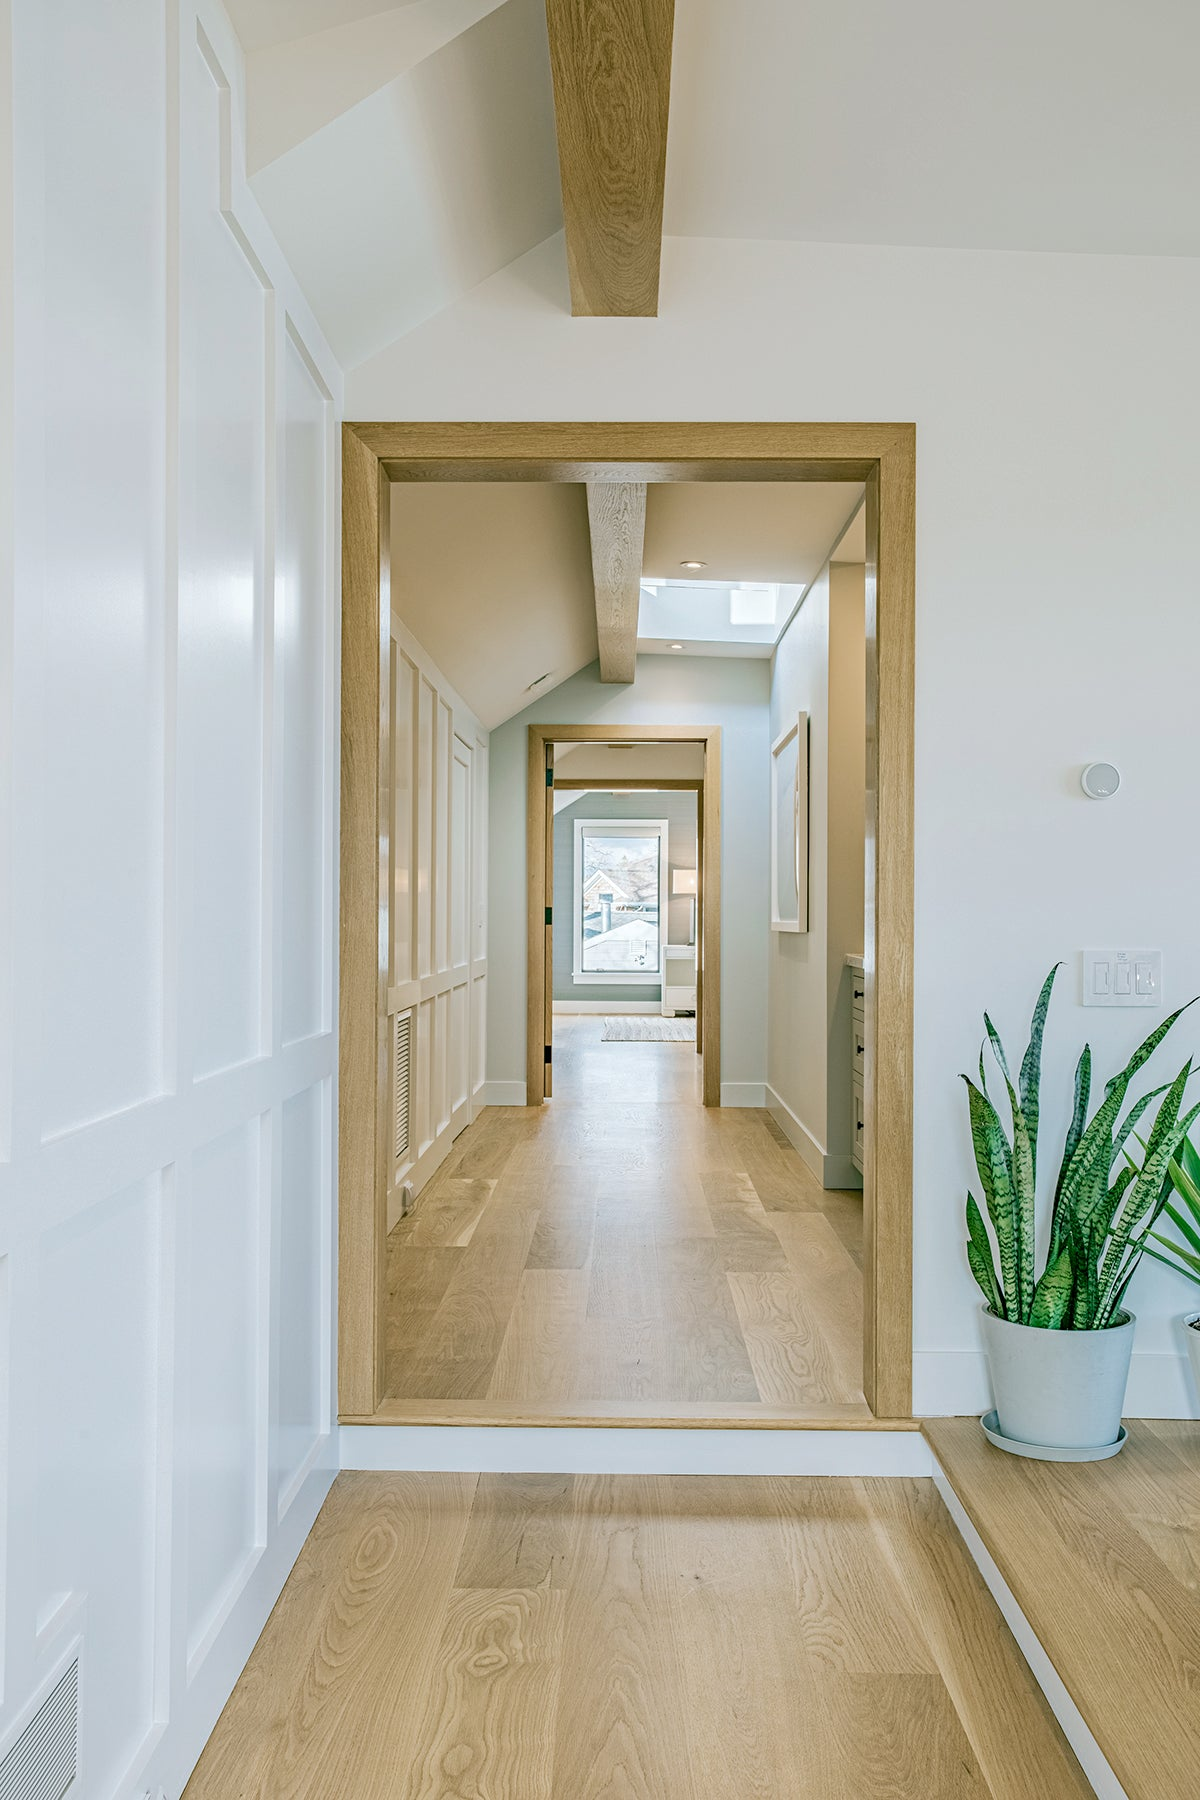 Ocean Blu Designs - Hallway - Modern Coastal and Transitional Designs for New York, Long Island, Connecticut, Hamptons, and Florida. Interior Designers